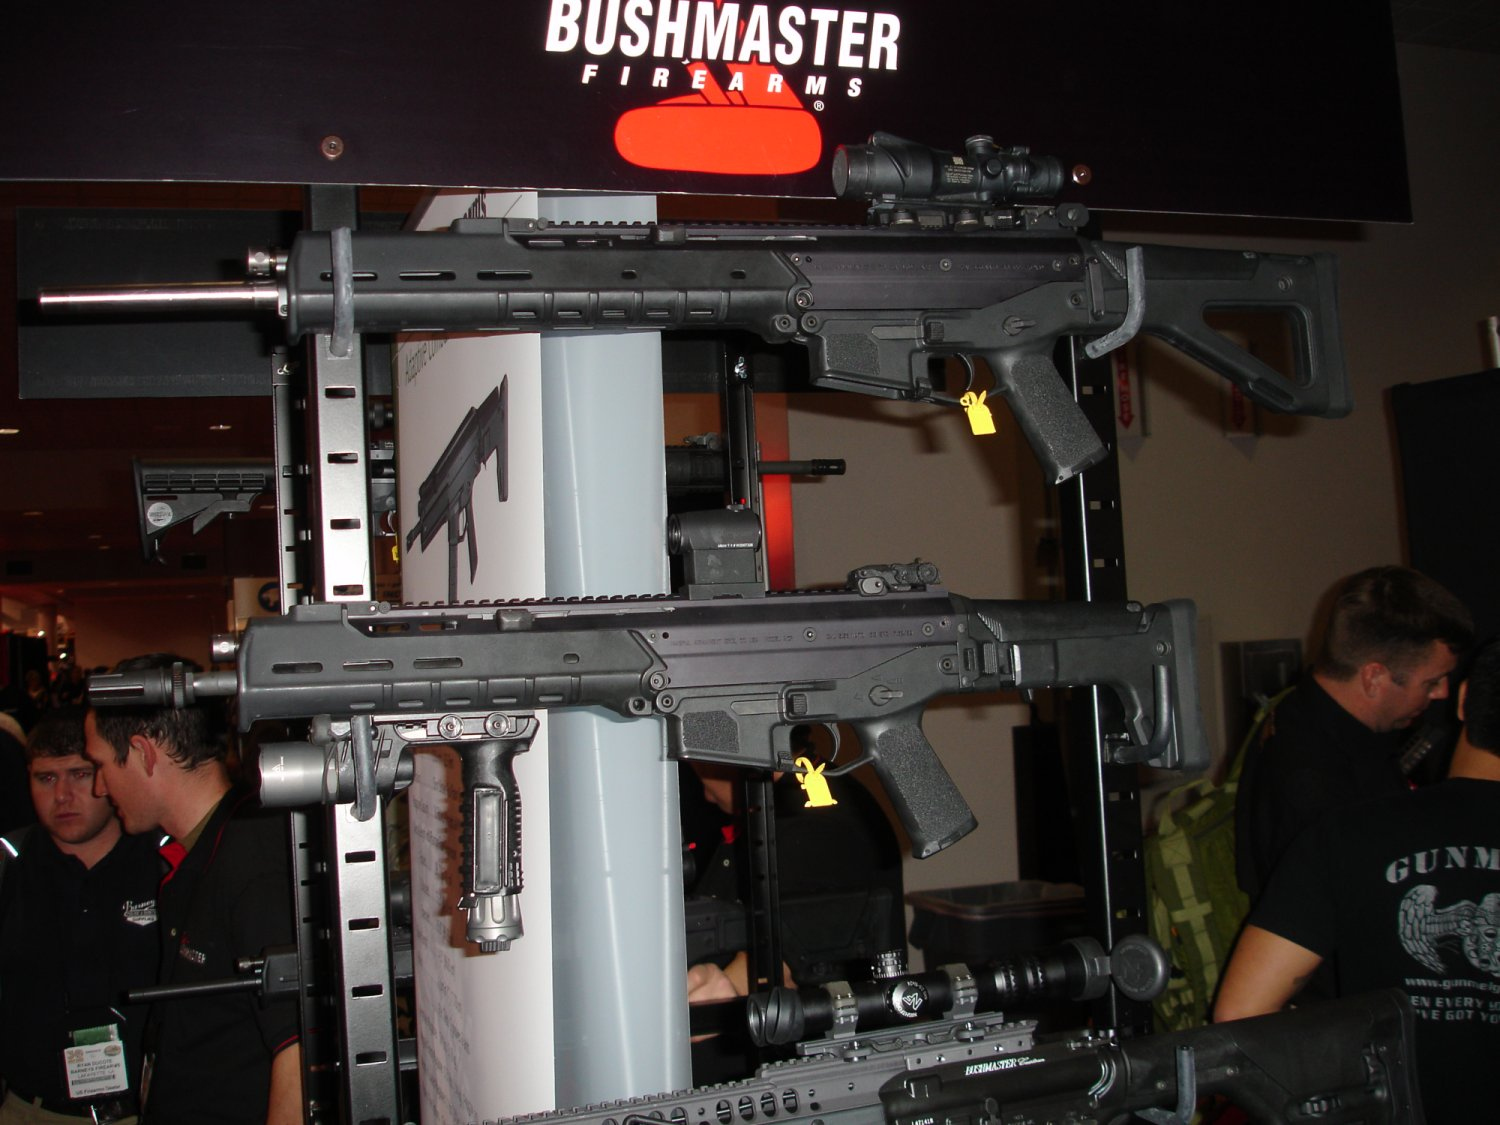 BushmasterFirearms AdaptiveCombatRifle%28ACR%29 2 SHOTShow2008 2 02 08 <!  :en  >MagPul Masada Rifle/Carbine Becomes the Bushmaster Adaptive Combat Rifle (ACR)<!  :  >